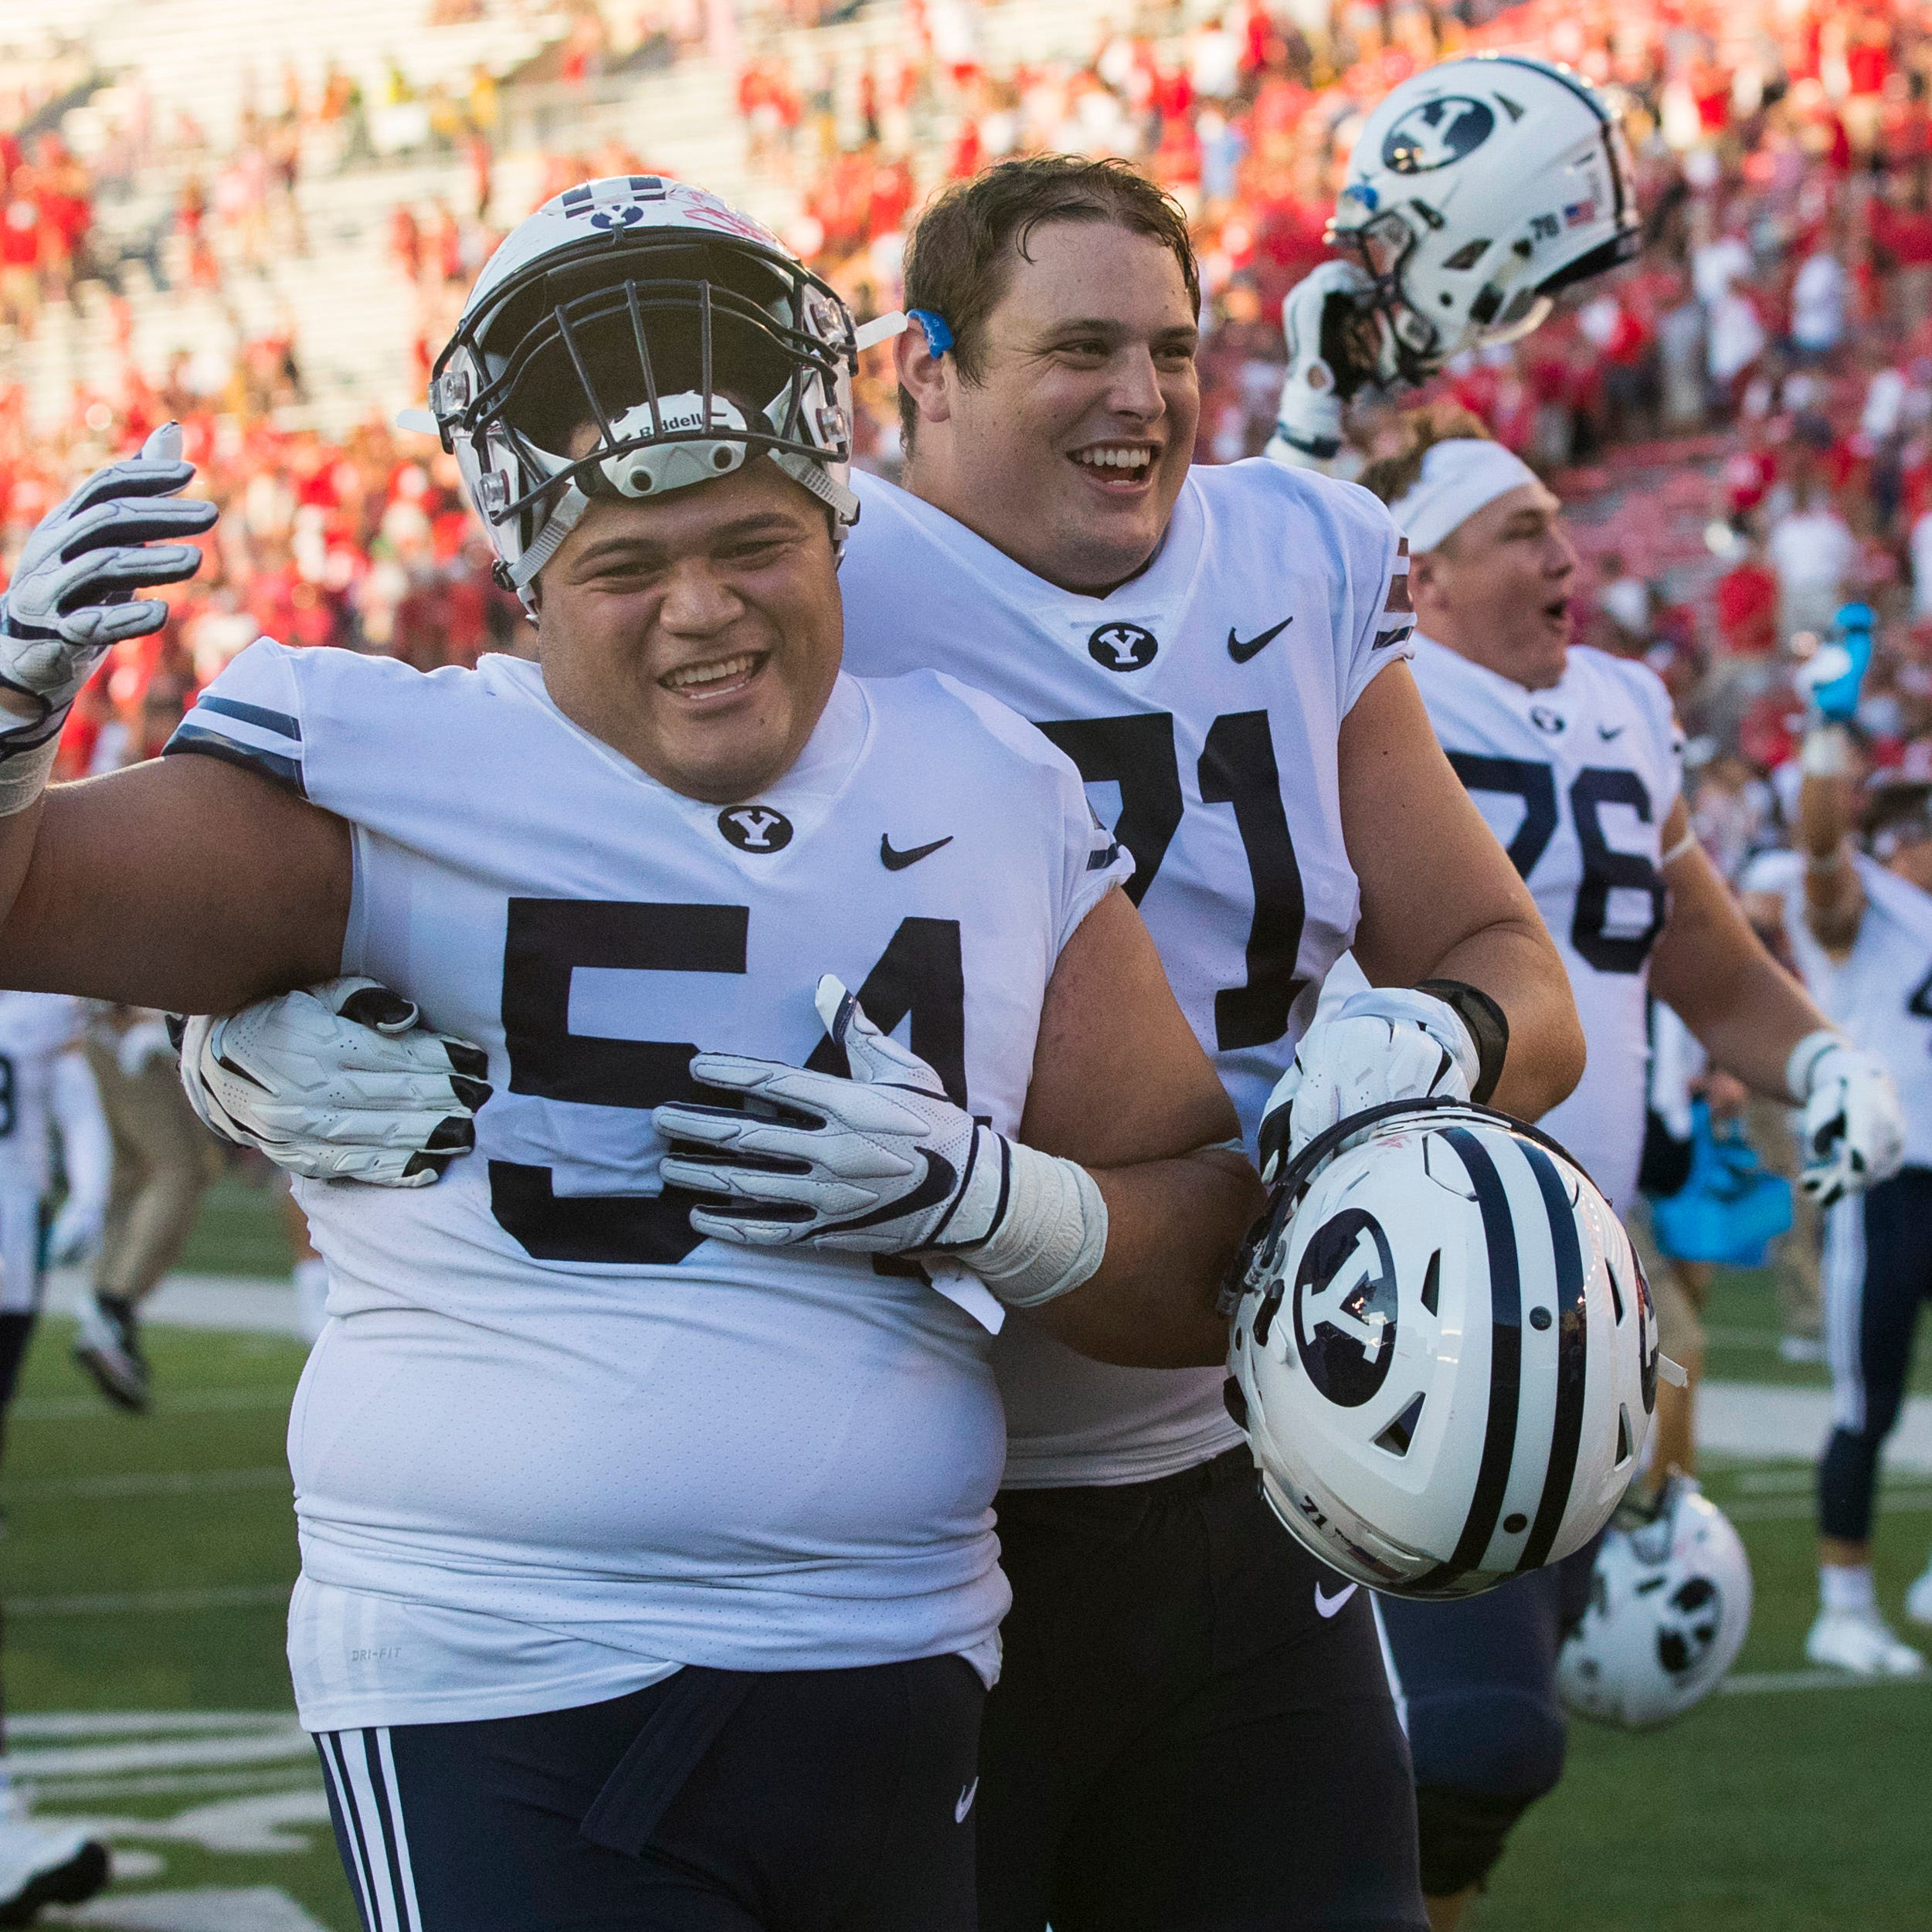 Leistikow's Hawkeyes mailbag: What Iowa can copy from the BYU blueprint to beat Badgers